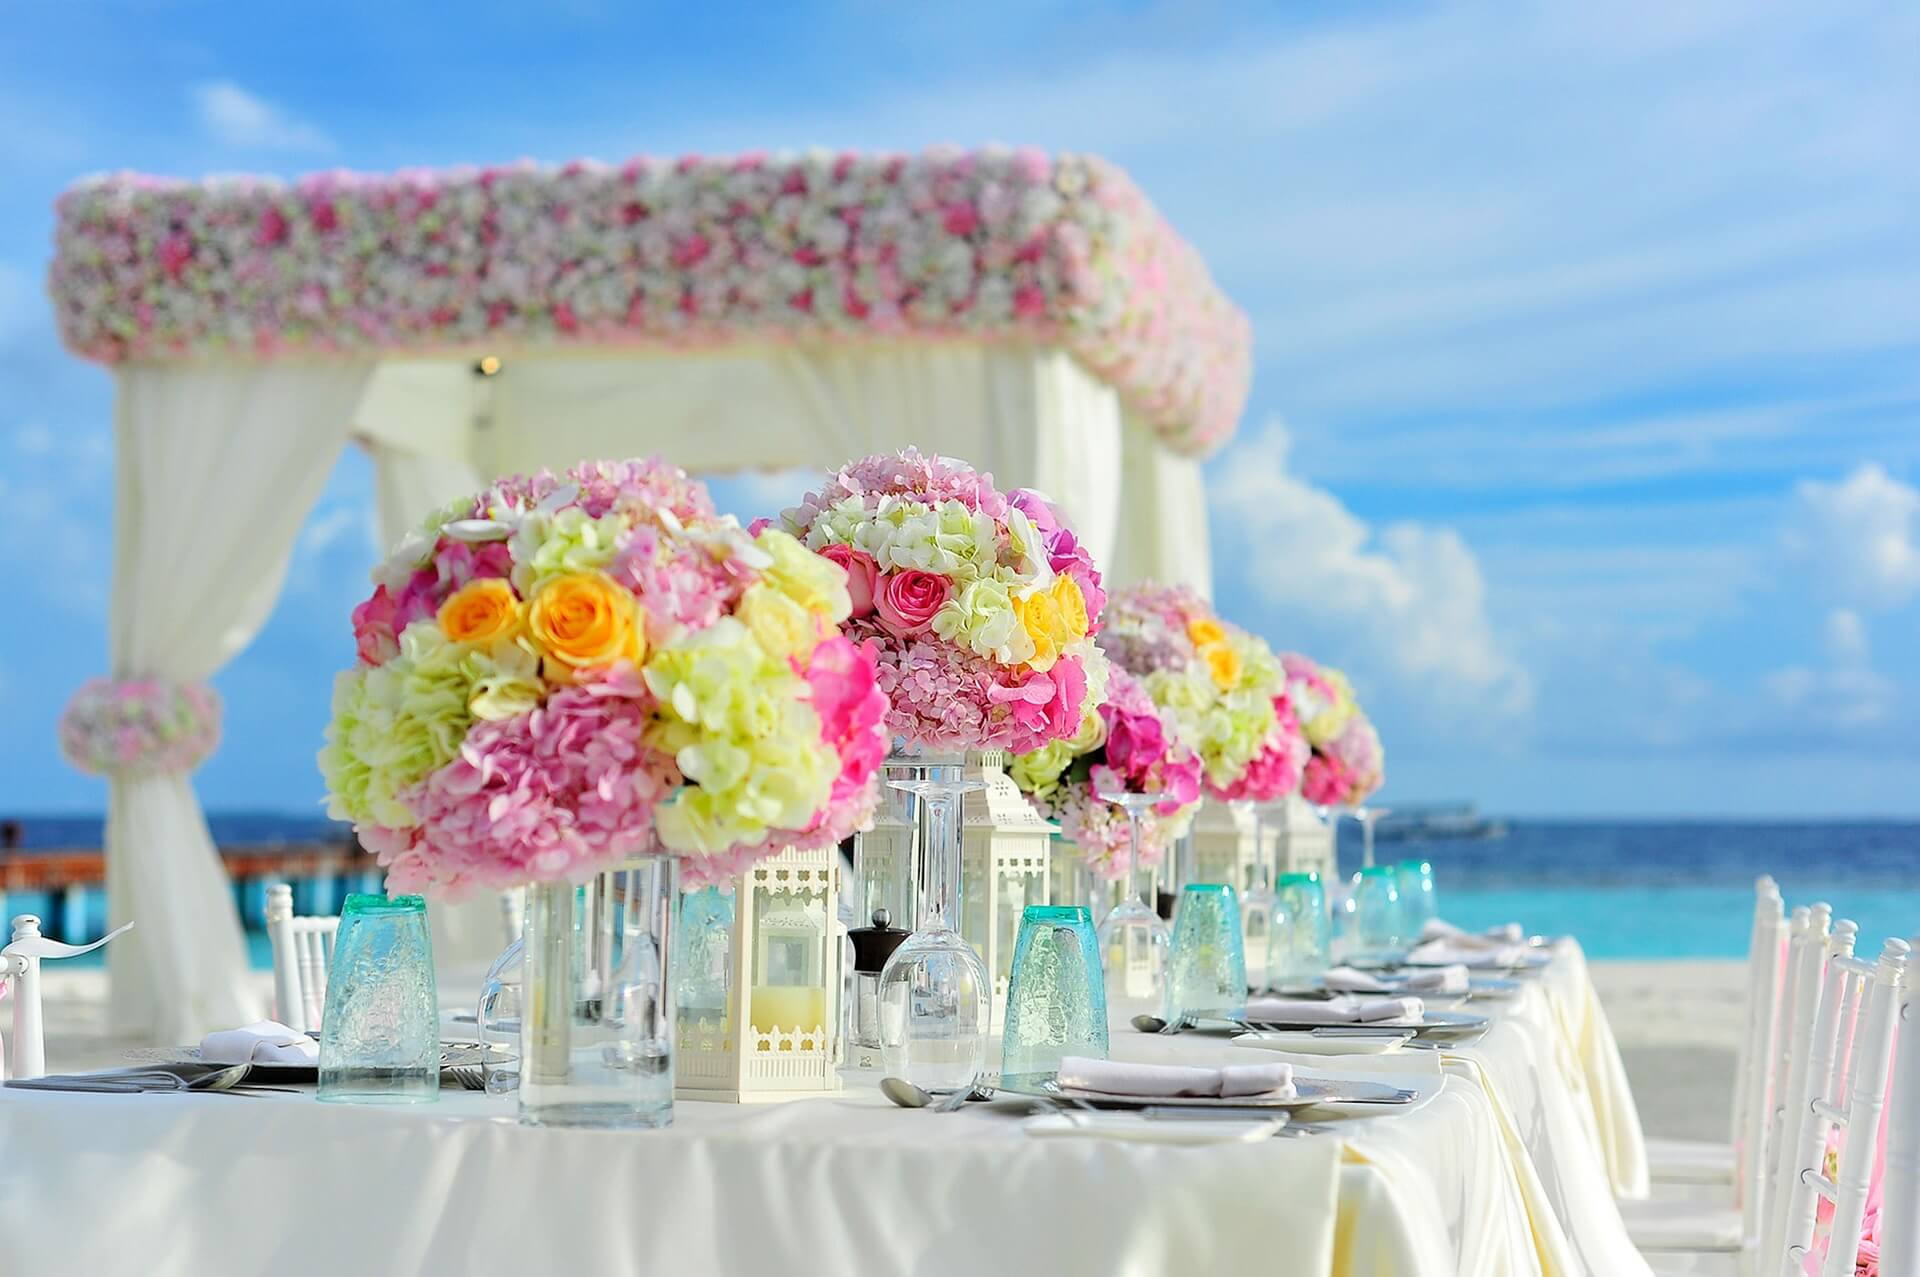 Want to find out the best ways to save money on your destination wedding? Check out this quiz.